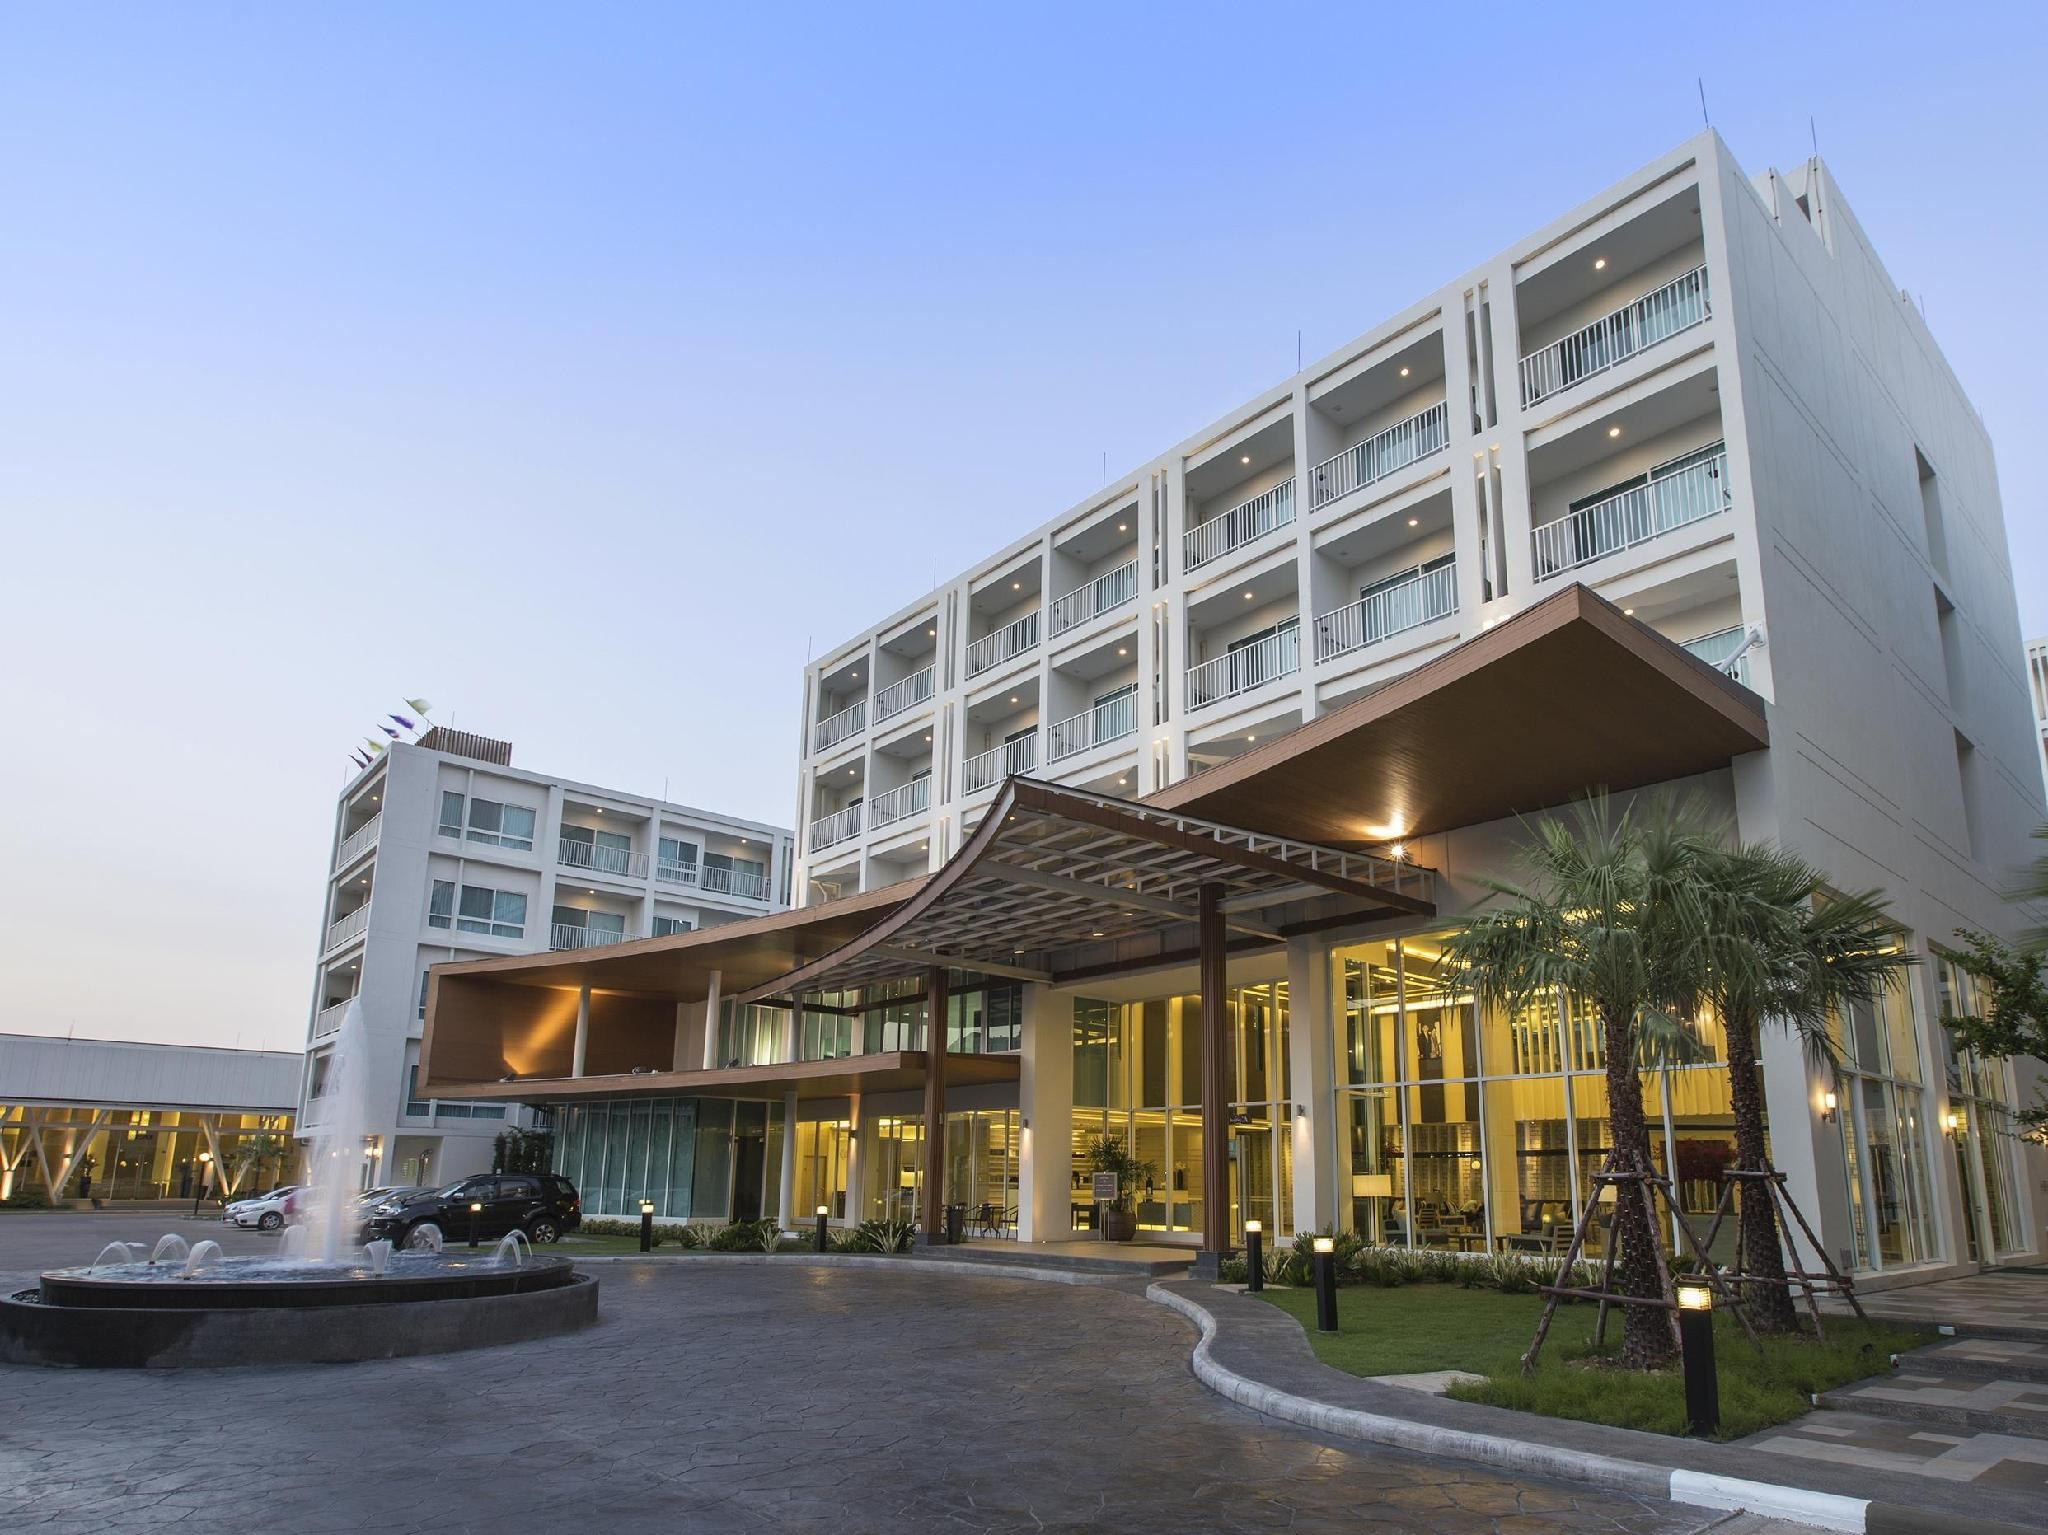 Kantary 304 Hotel & Serviced Apartments Prachinburi - Prachinburi